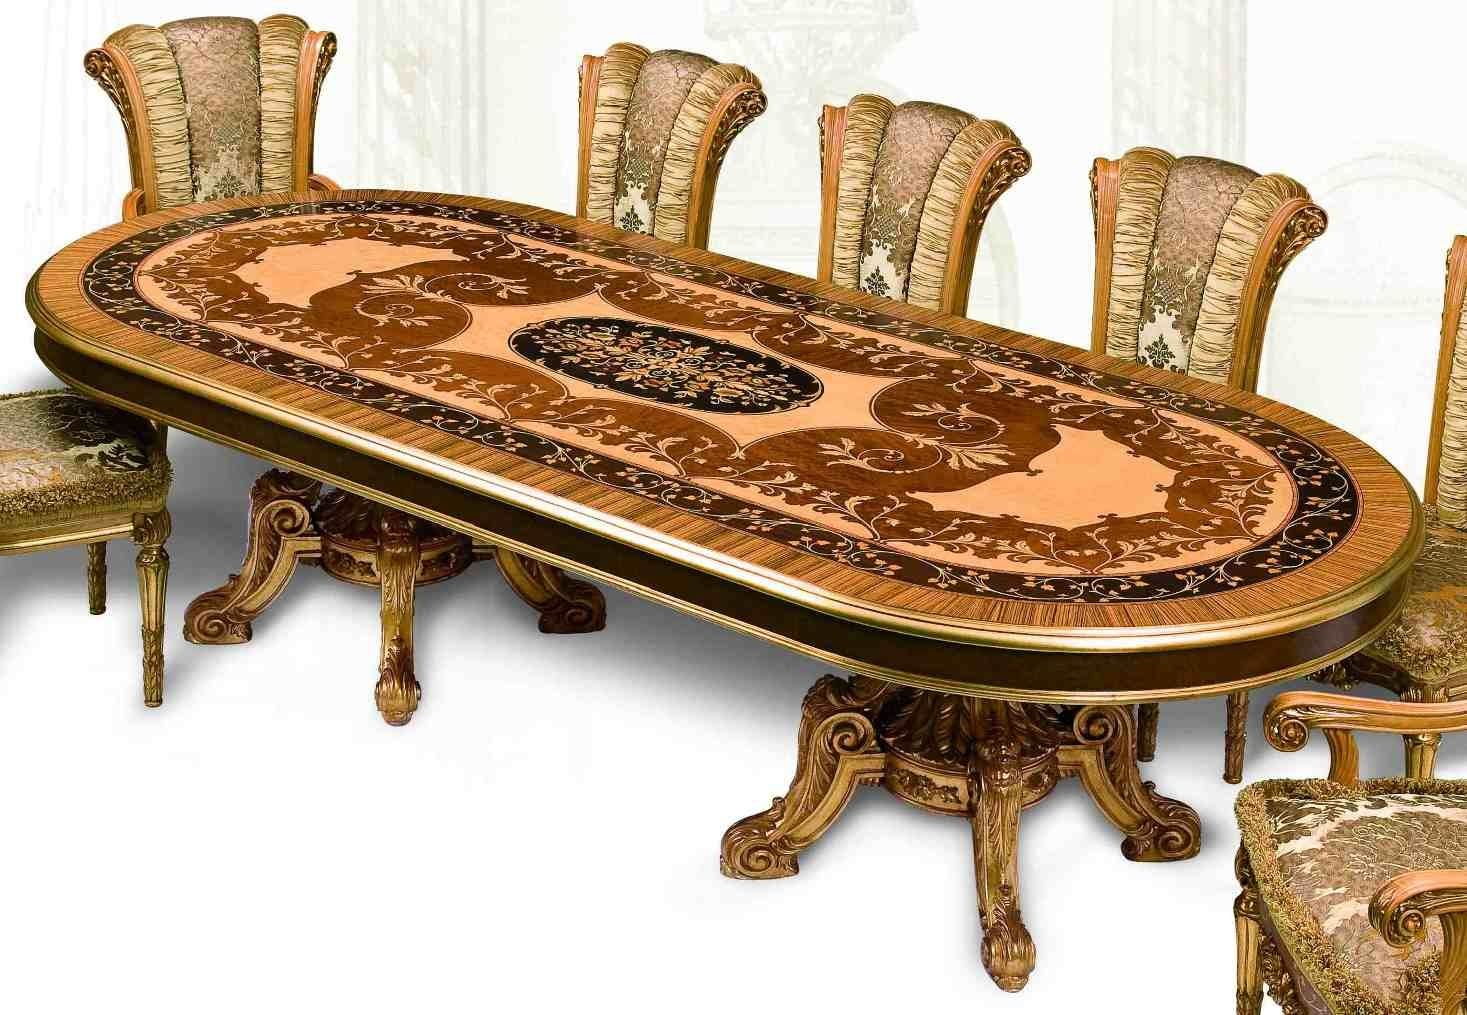 11 Luxury Dining Furniture Exquisite Empire Style Set